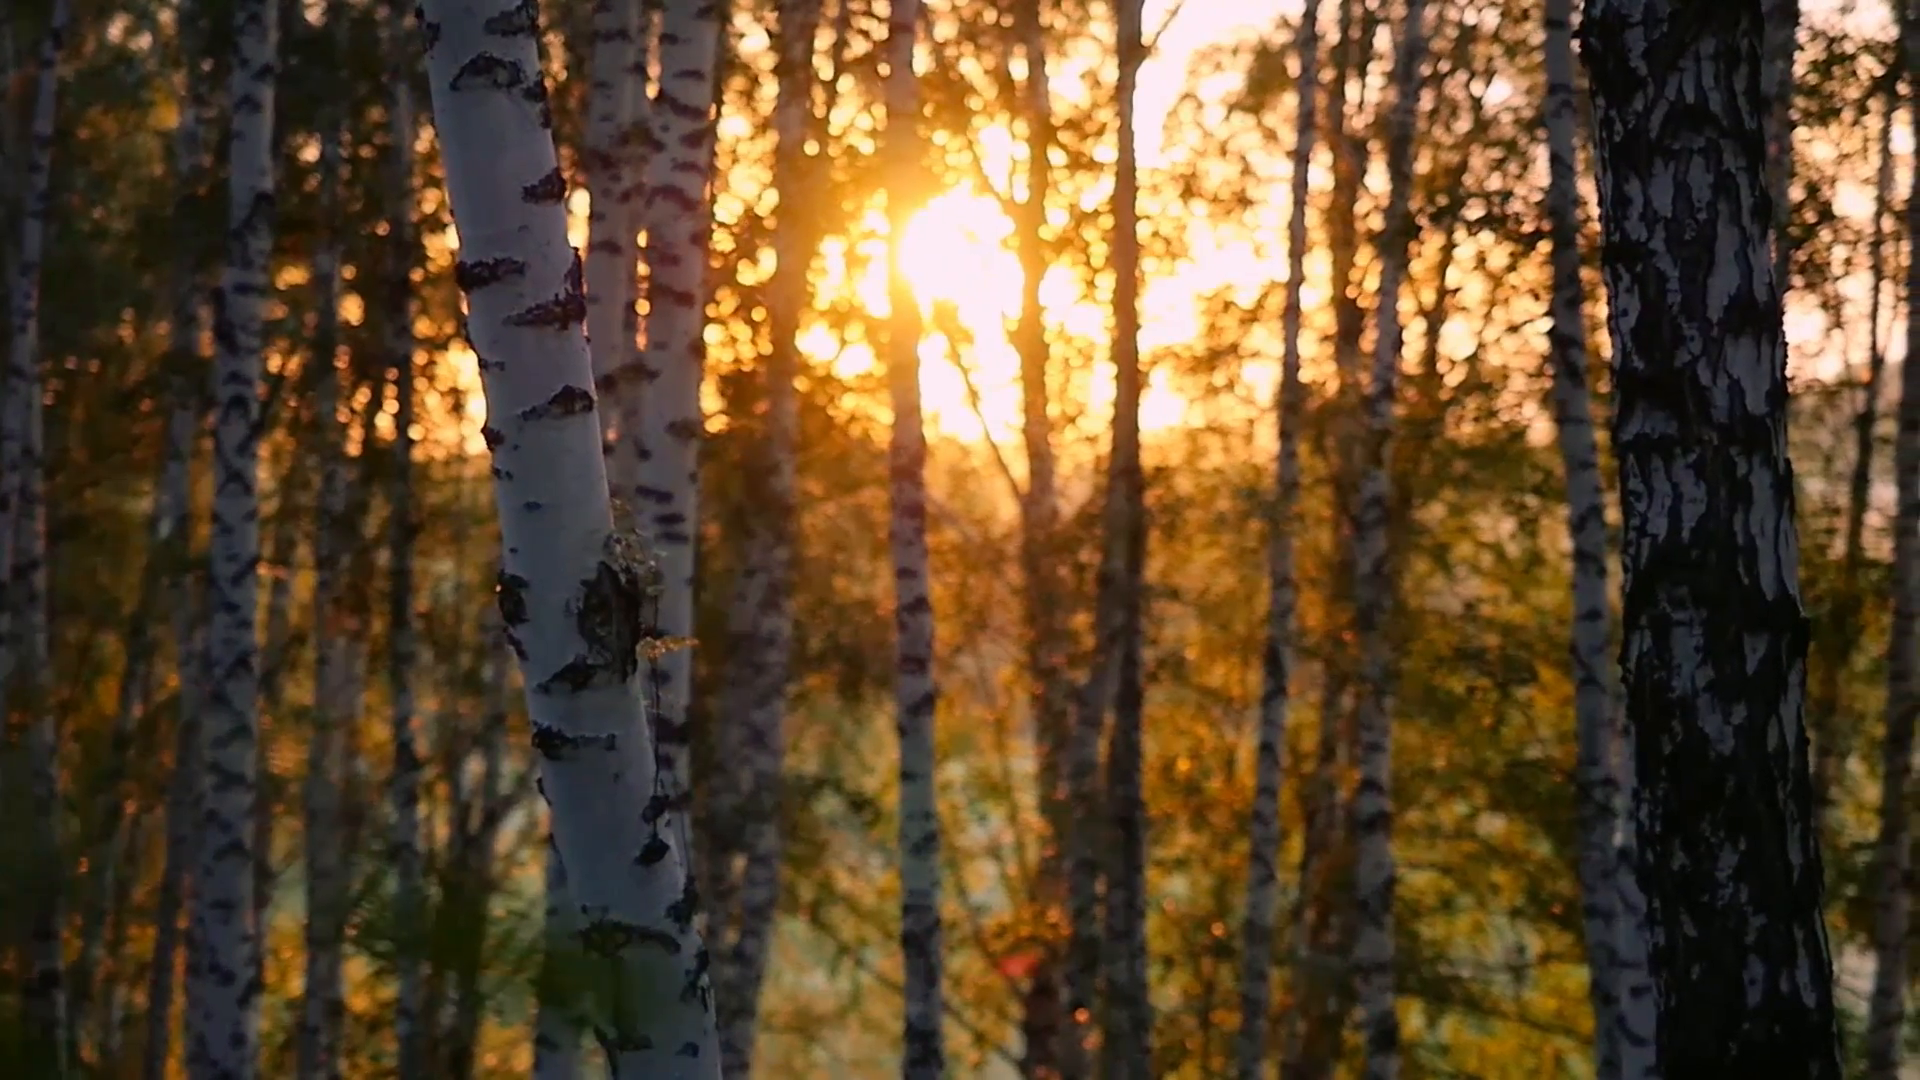 birch trees in a summer forest during sunset in slowmotion. Changes ...